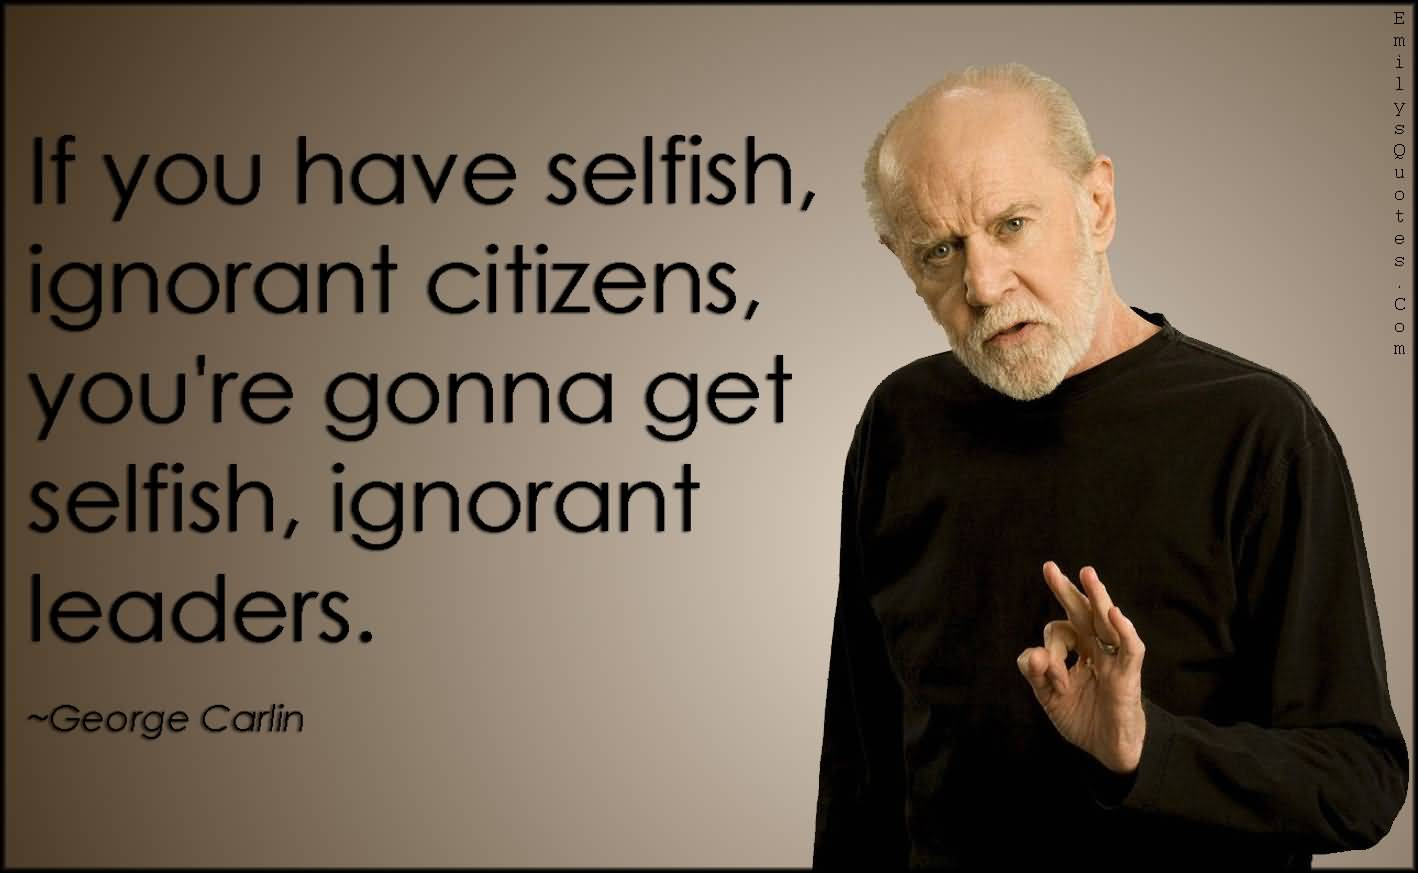 If You Have Selfish George Carlin Quotes